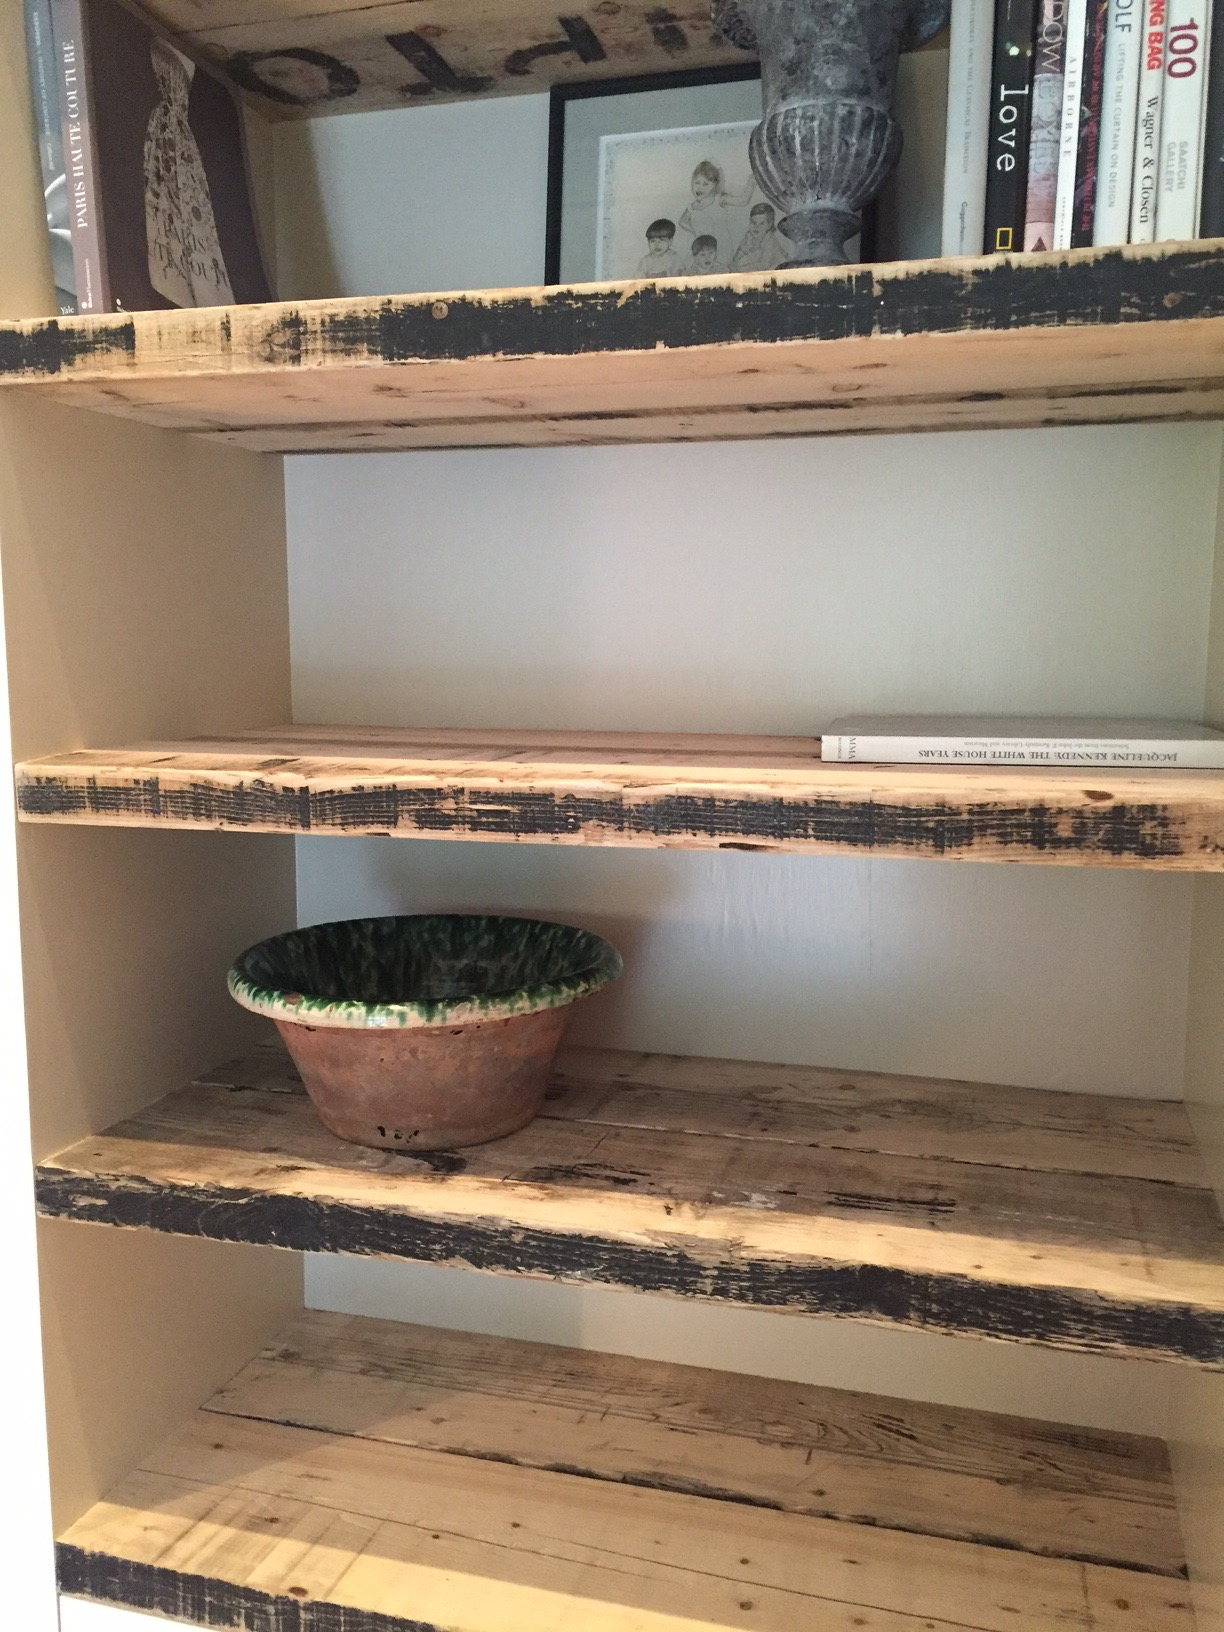 Custom bookshelves in the living room, done with thick, strong barn wood that had streaks of old black paint on them, were painted on the inside walls with Joa's White, a perfect compliment to the wood and the black. It gives a feeling of warmth and color to the thick sturdiness, a subtle depth to the bookcases. Since my business involved fashion, I have used these shelves as a wonderful atelier's holding area for knitted garments during my seasonal showcases.